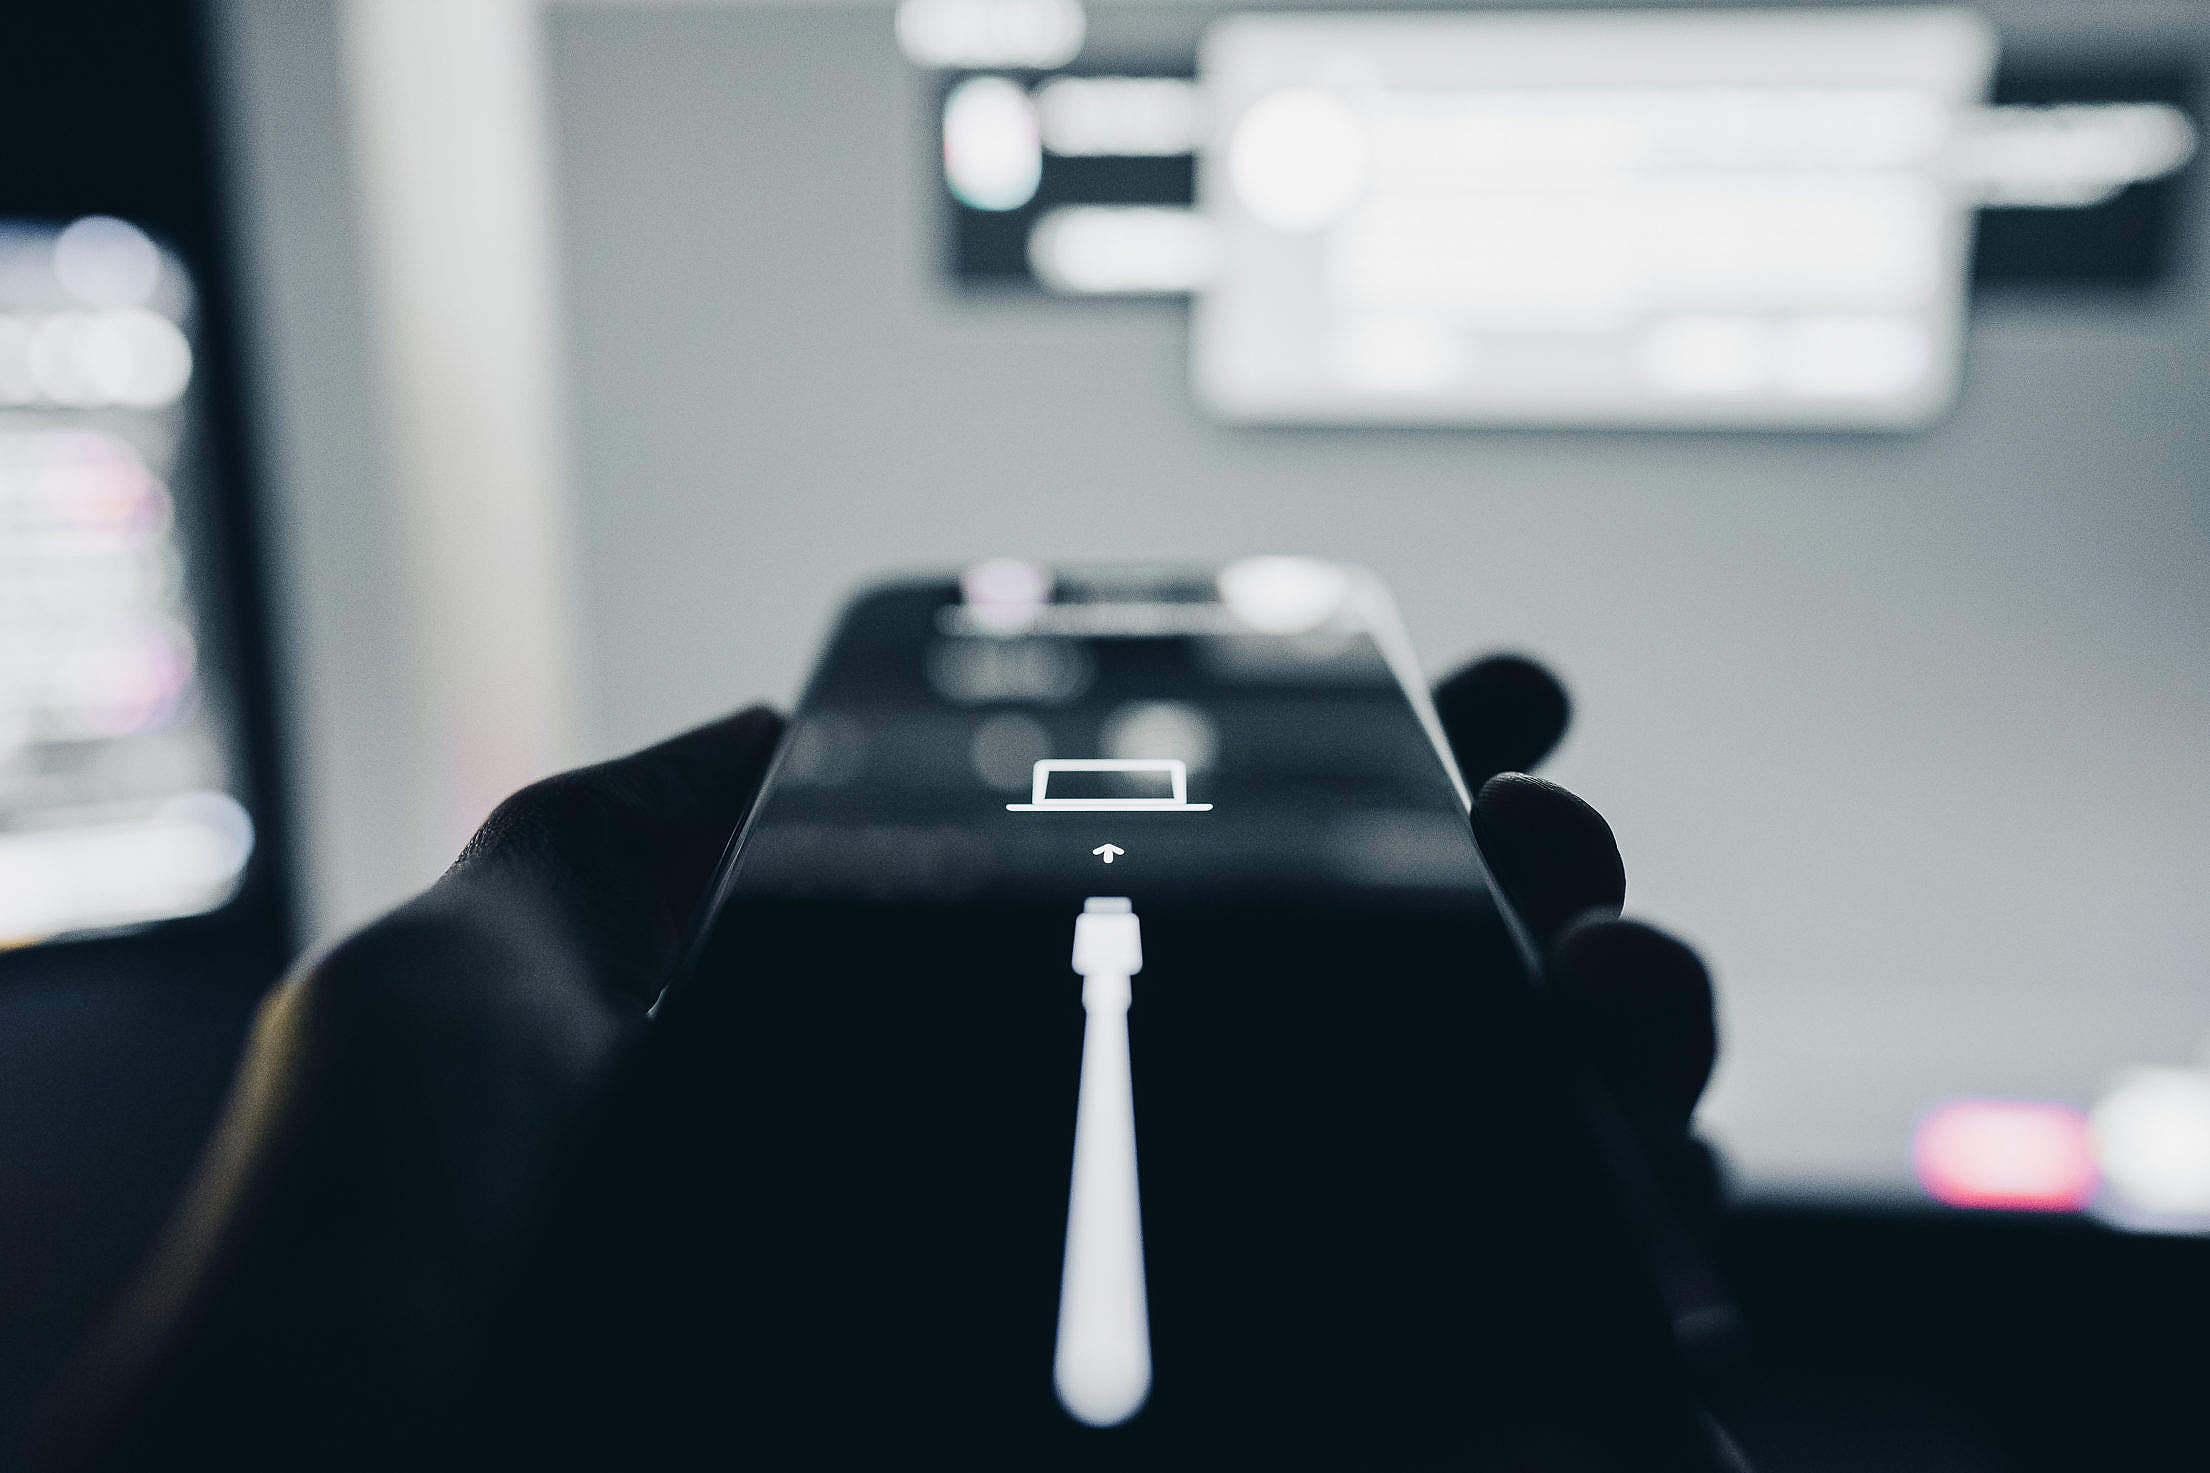 iPhone Stuck in Recovery Mode Free Stock Photo